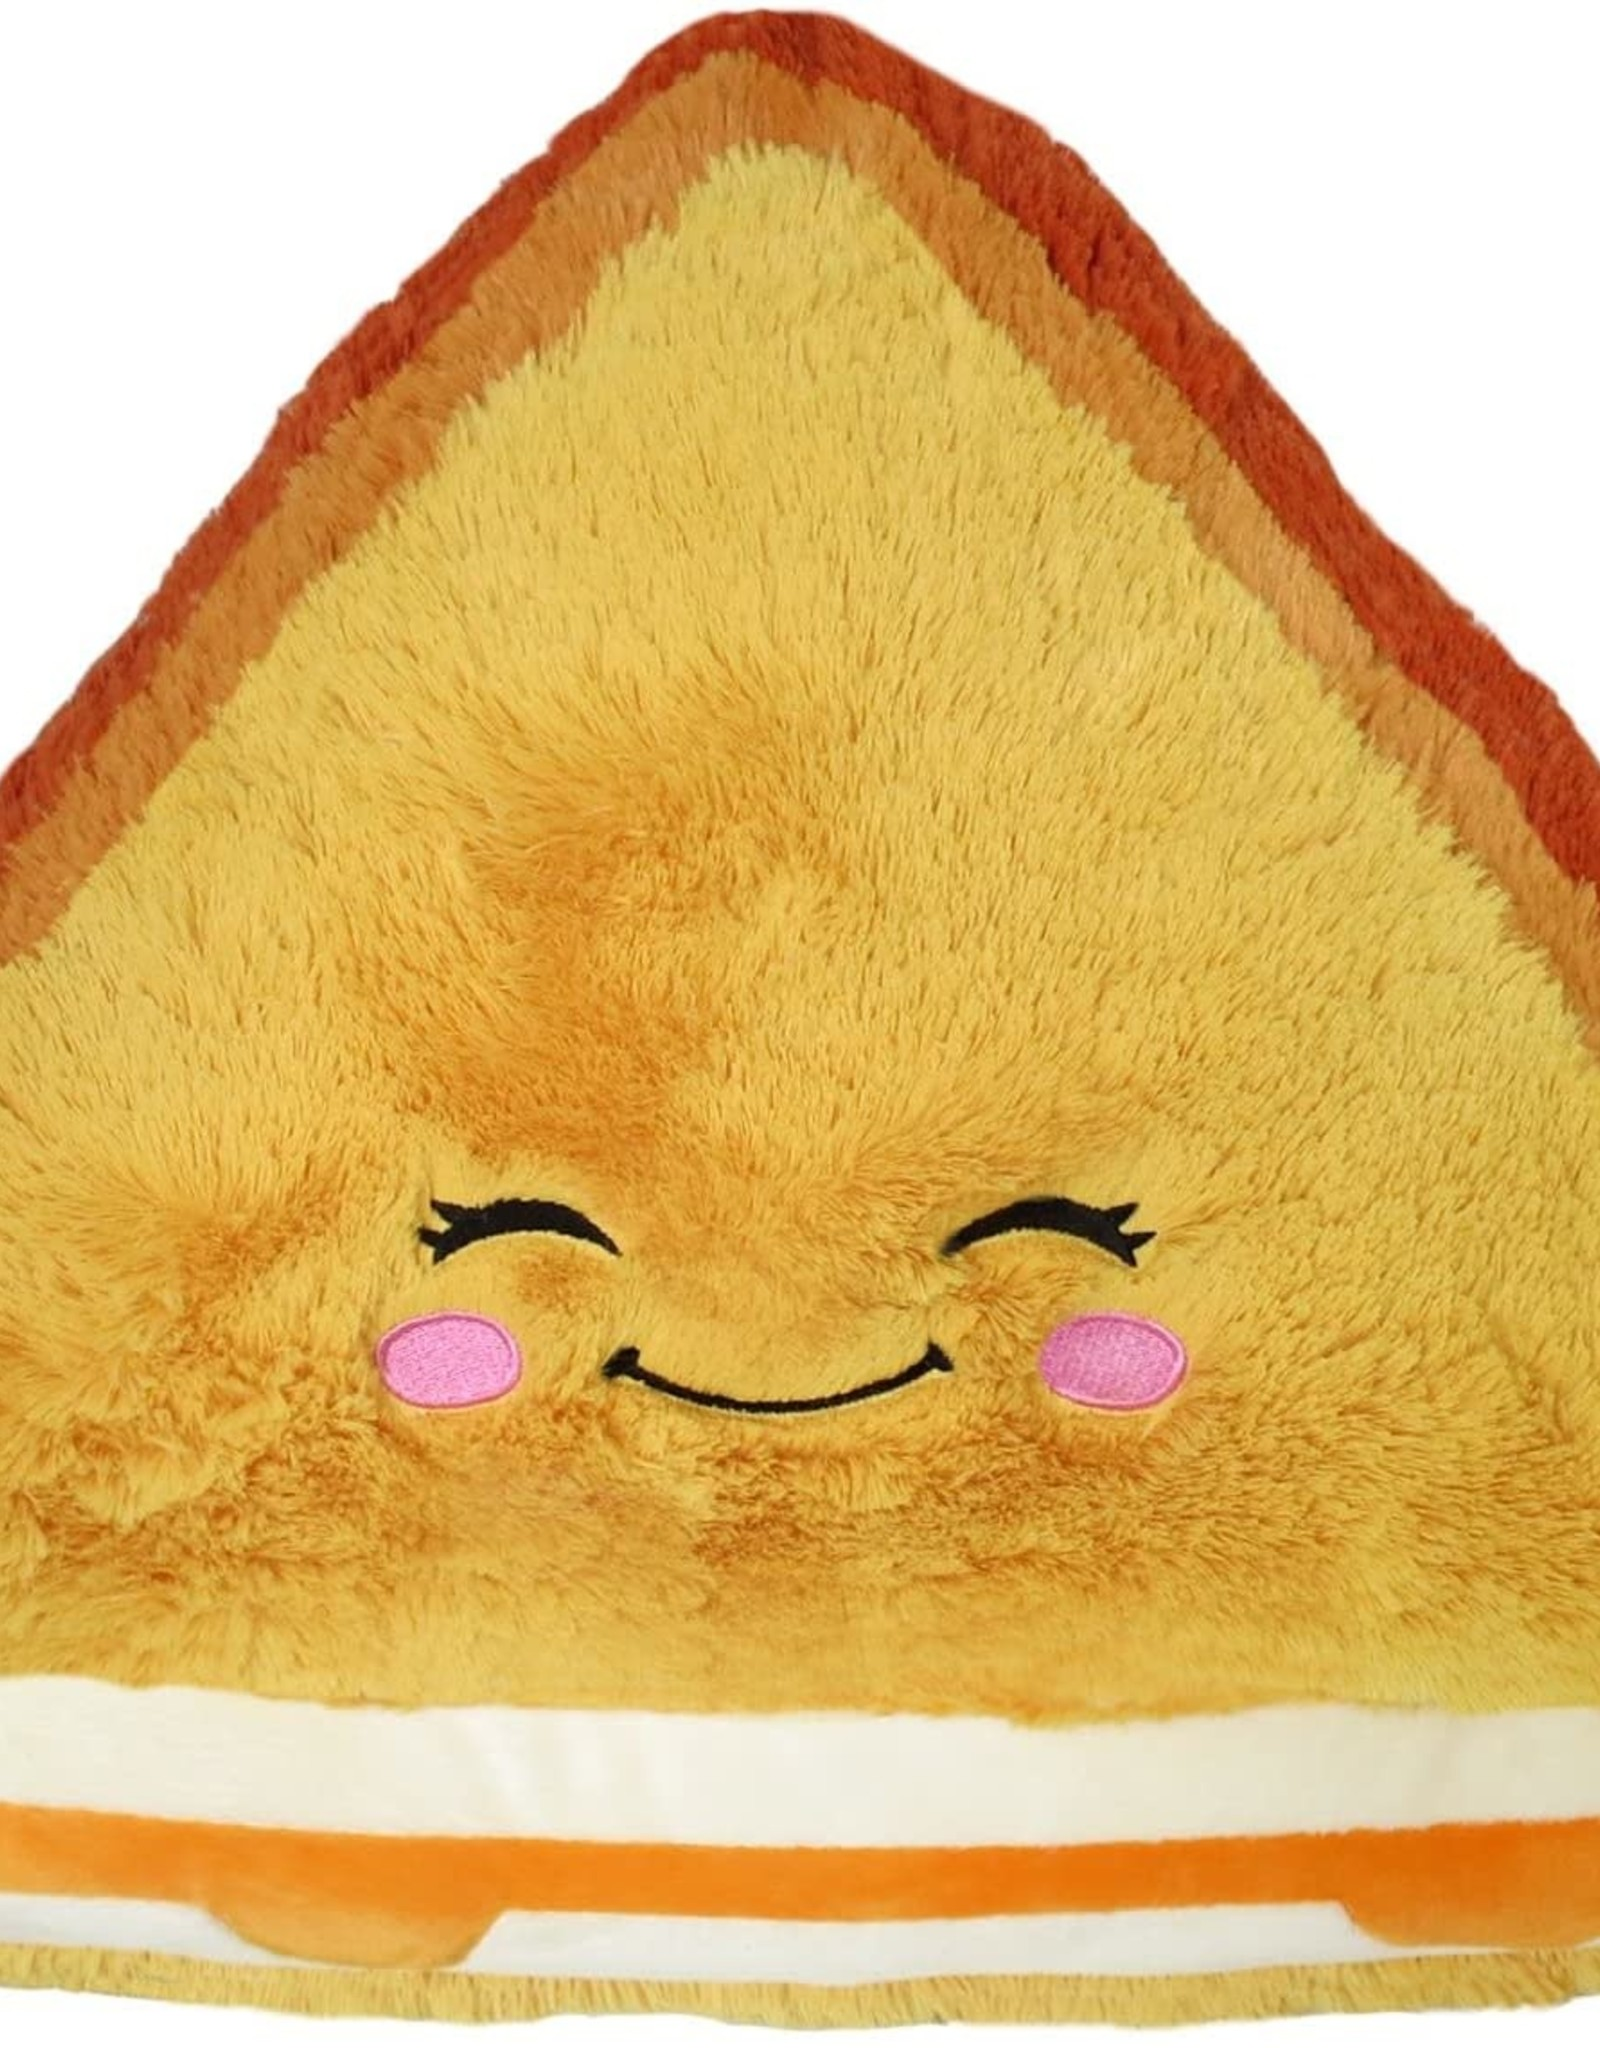 Squishable Mini Squishable Grilled Cheese